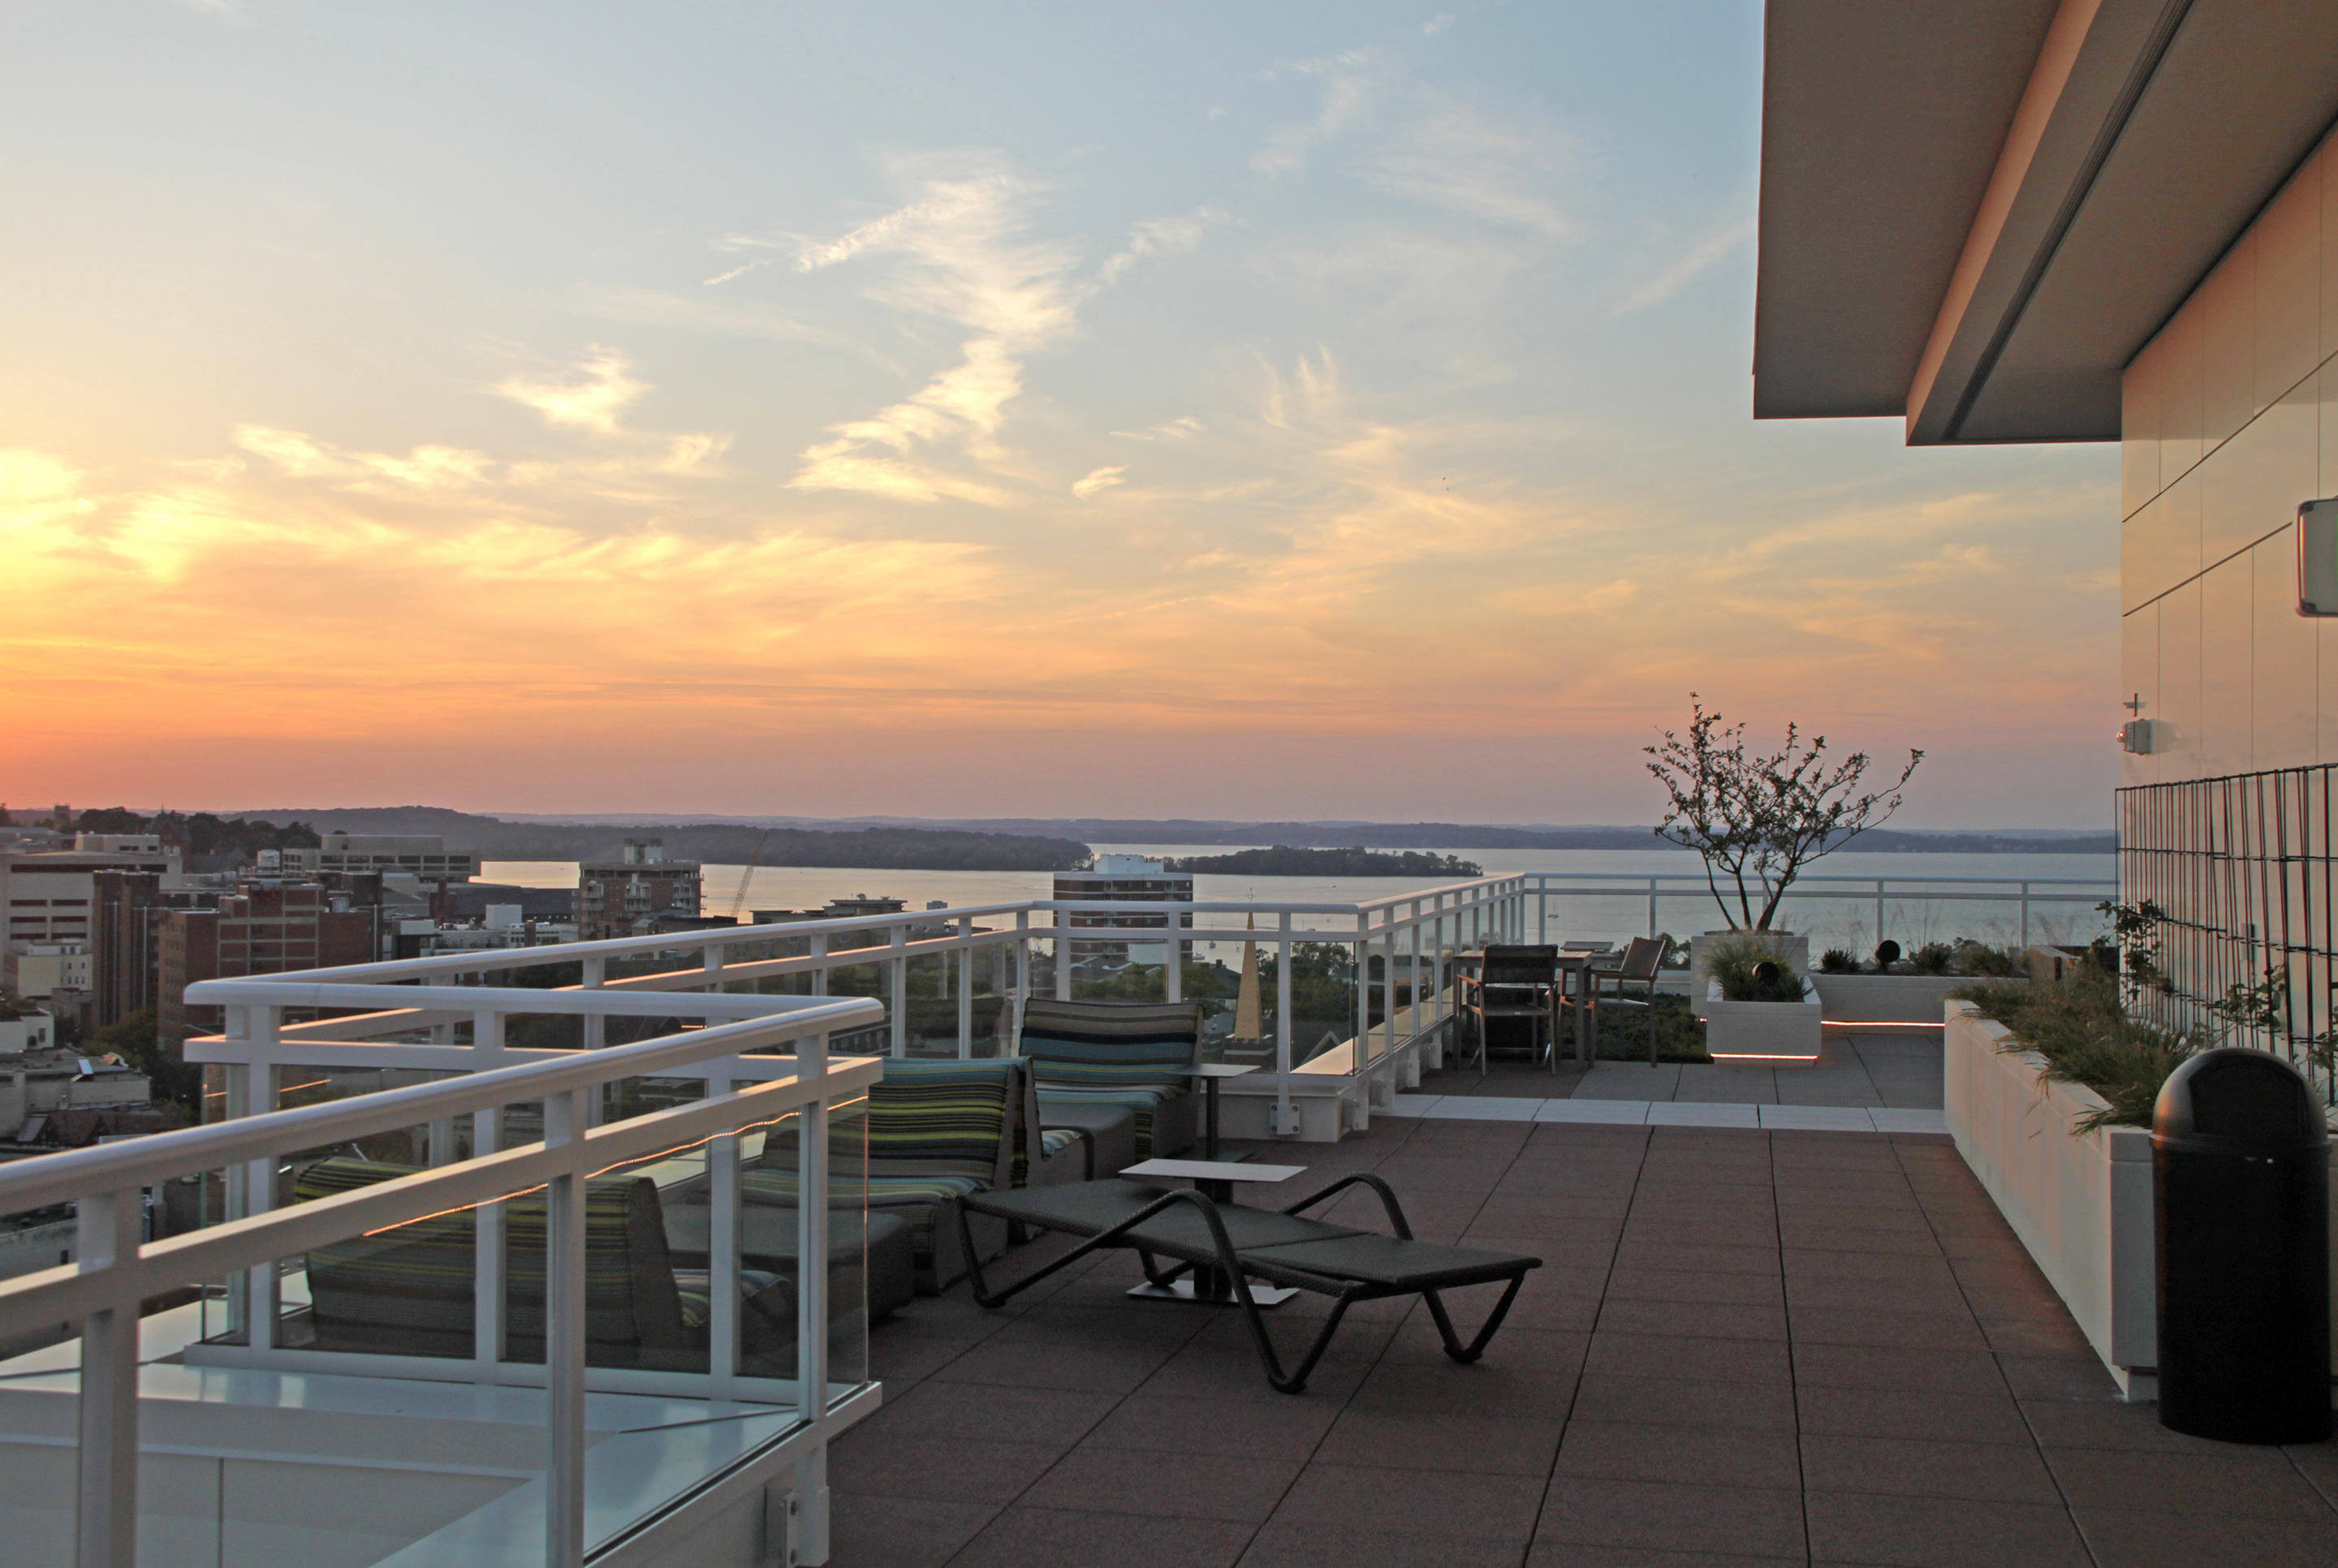 Spectacular views of Lake Mendota and the State Capitol building dominate the outdoor terraces on the thirteenth floor.